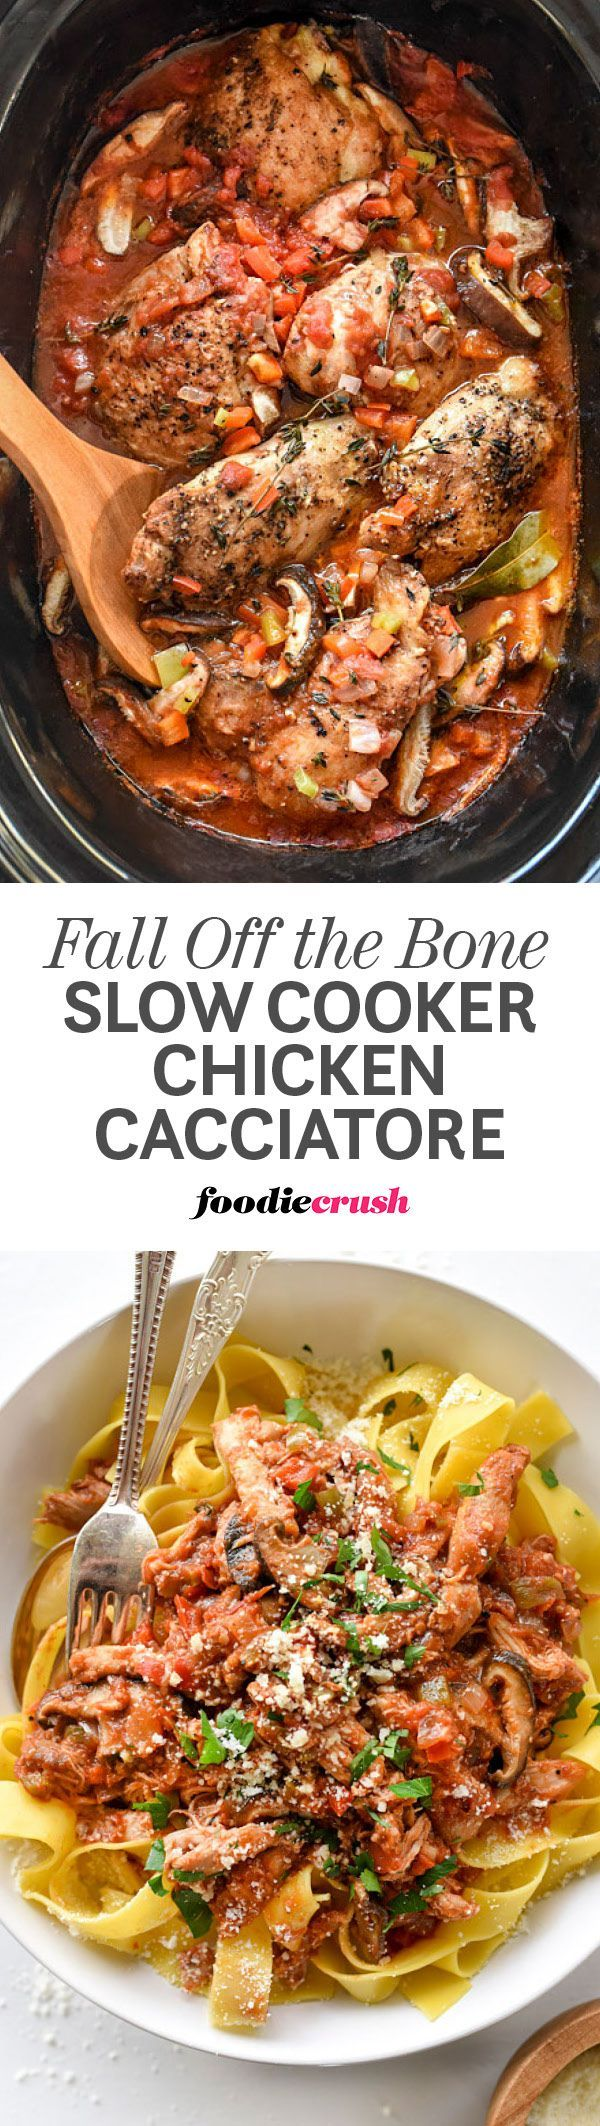 Slow-cooked bone-in, skinless chicken thighs create the luxe flavor in this savory Slow Cooker Chicken Cacciatore dinner from the Skinnytaste Fast and Slow Cookbook!